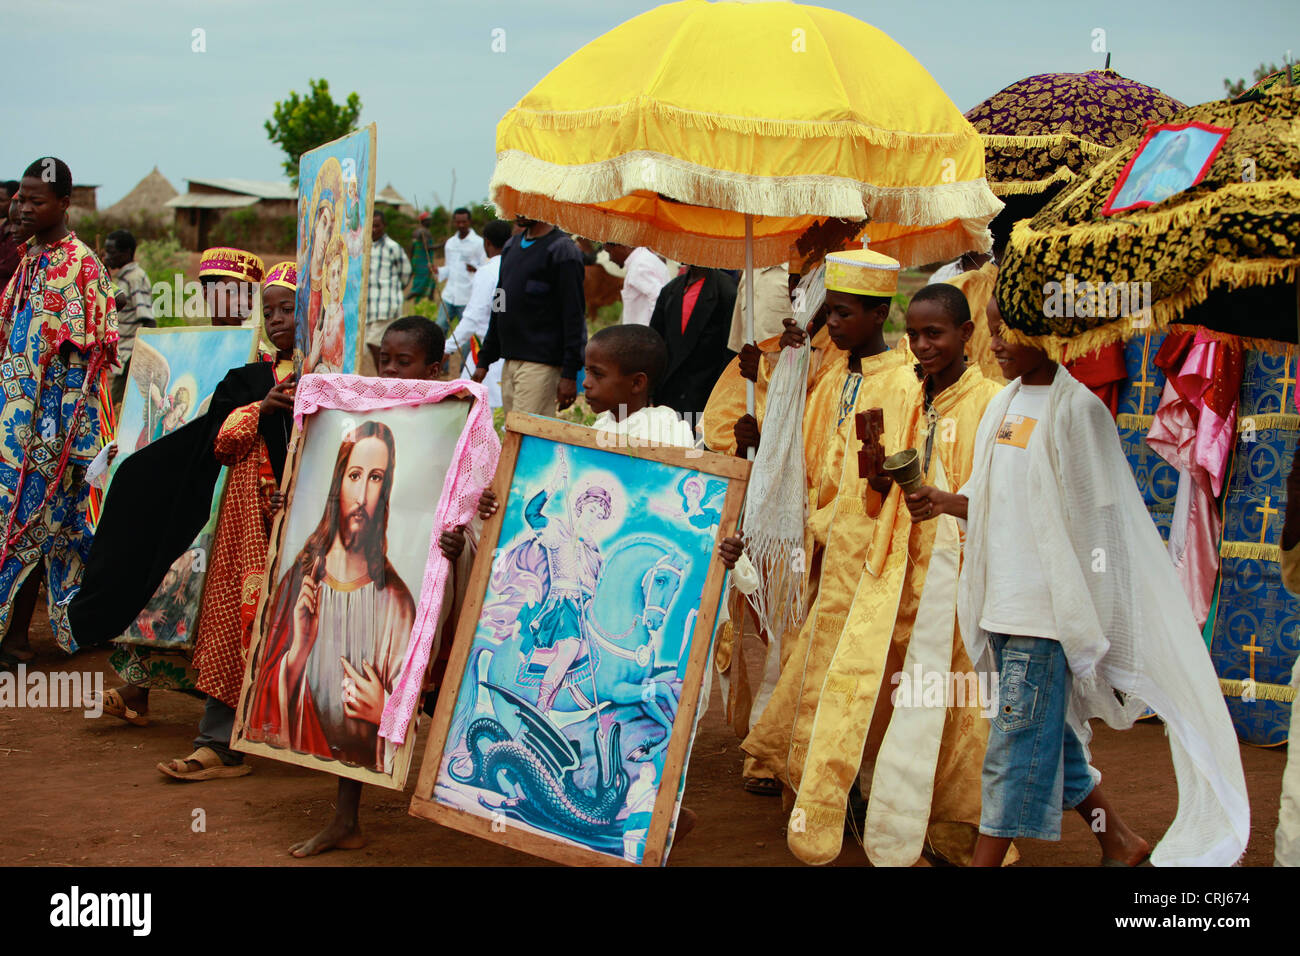 Young boys walking in religious procession. - Stock Image